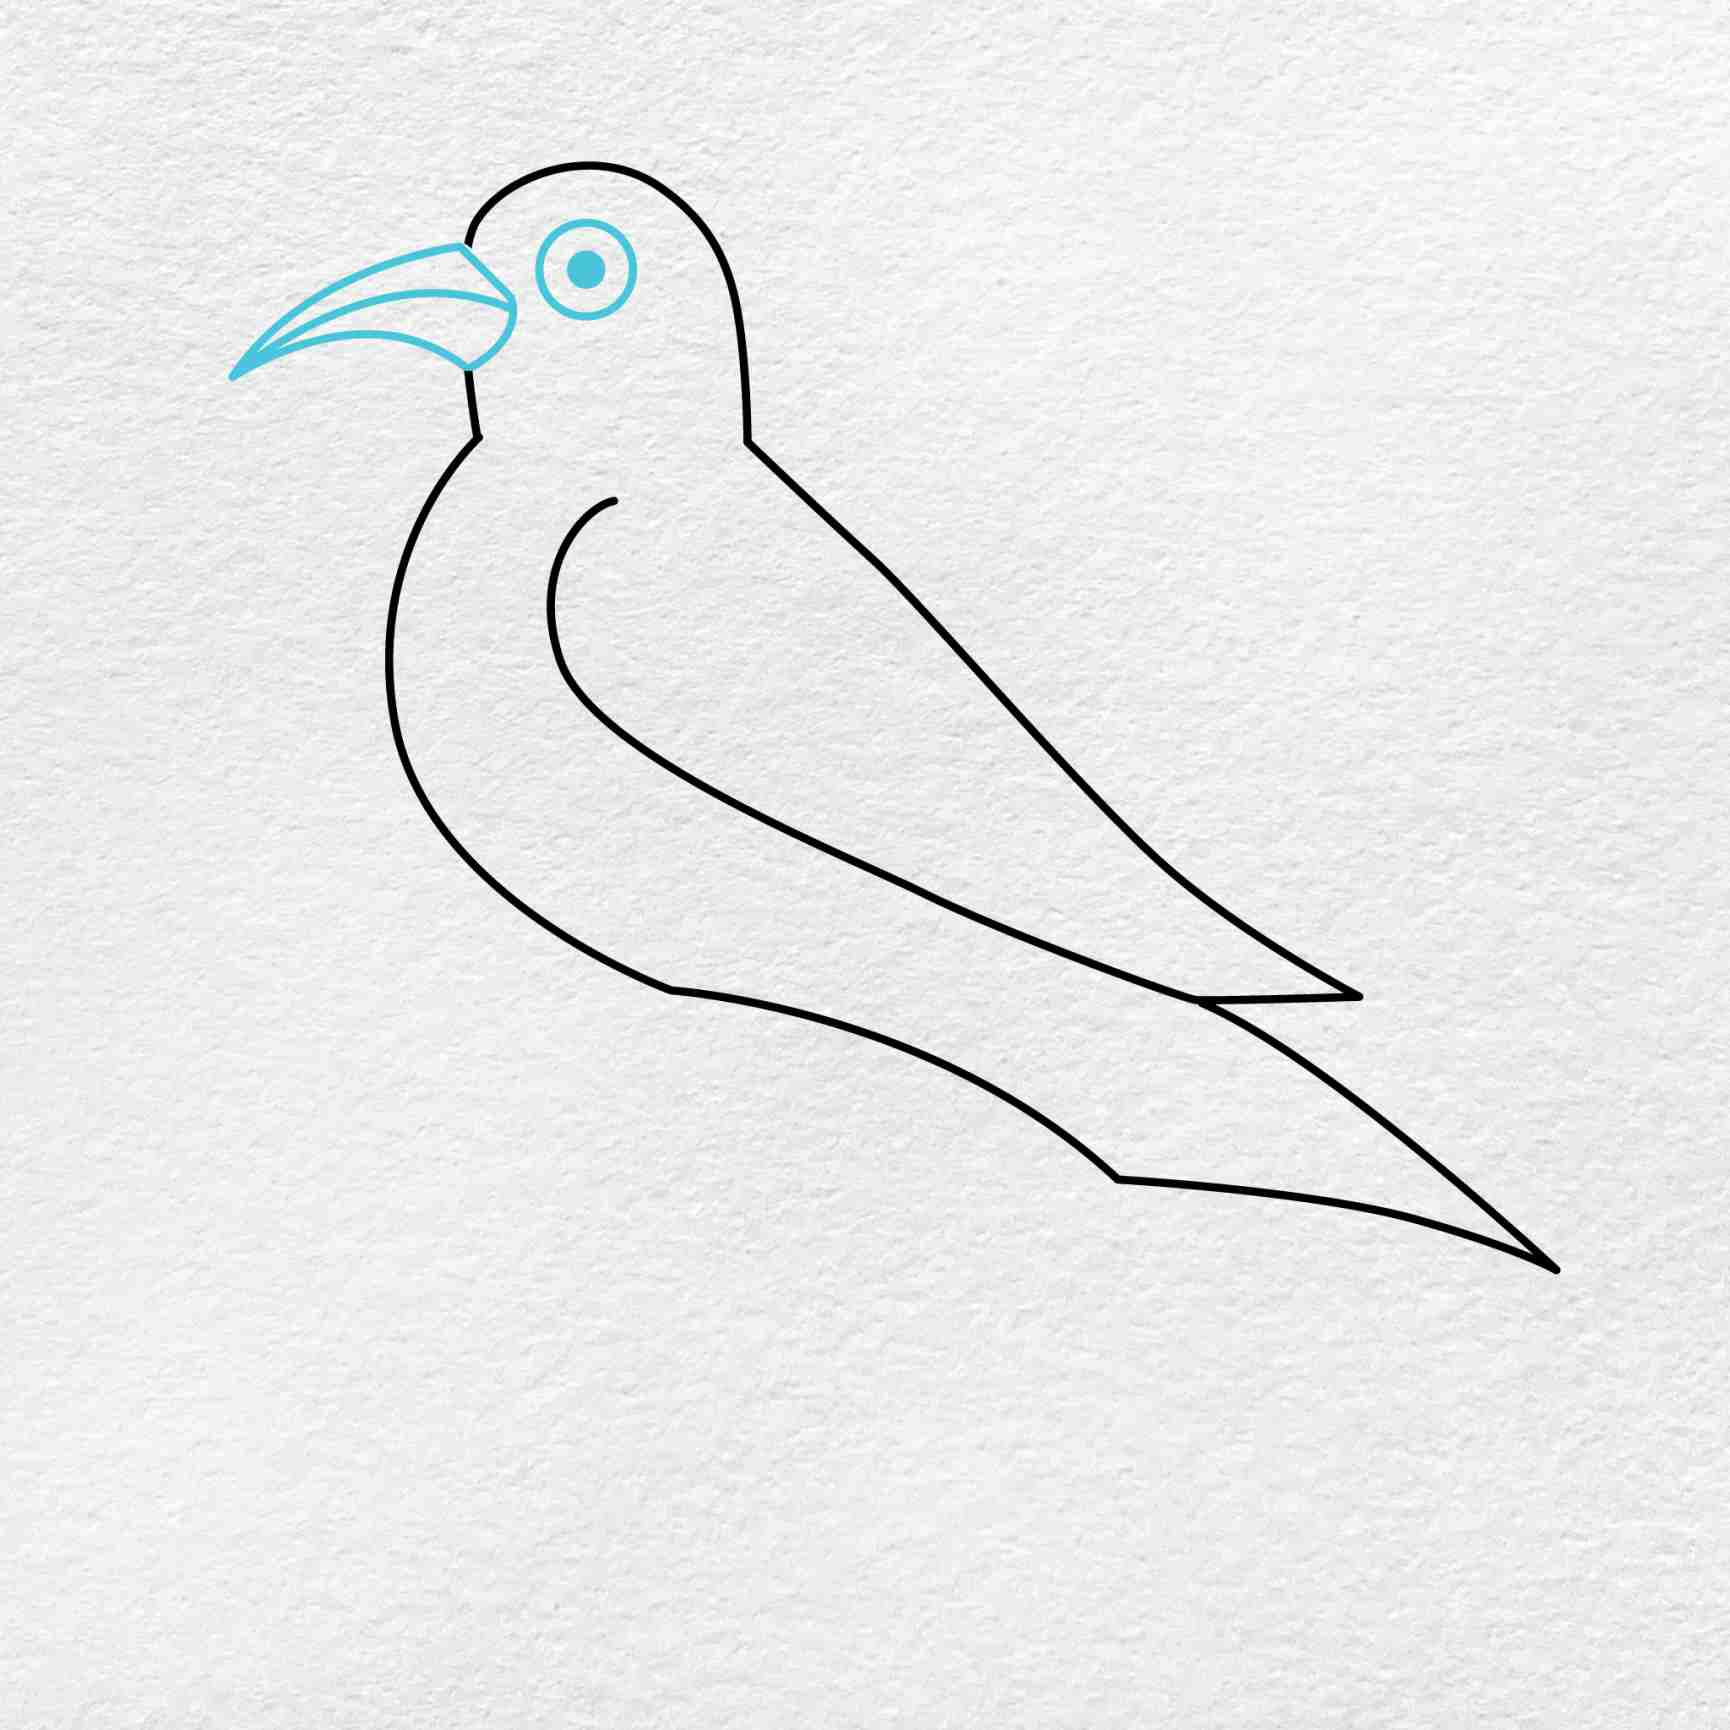 How To Draw A Crow: Step 4